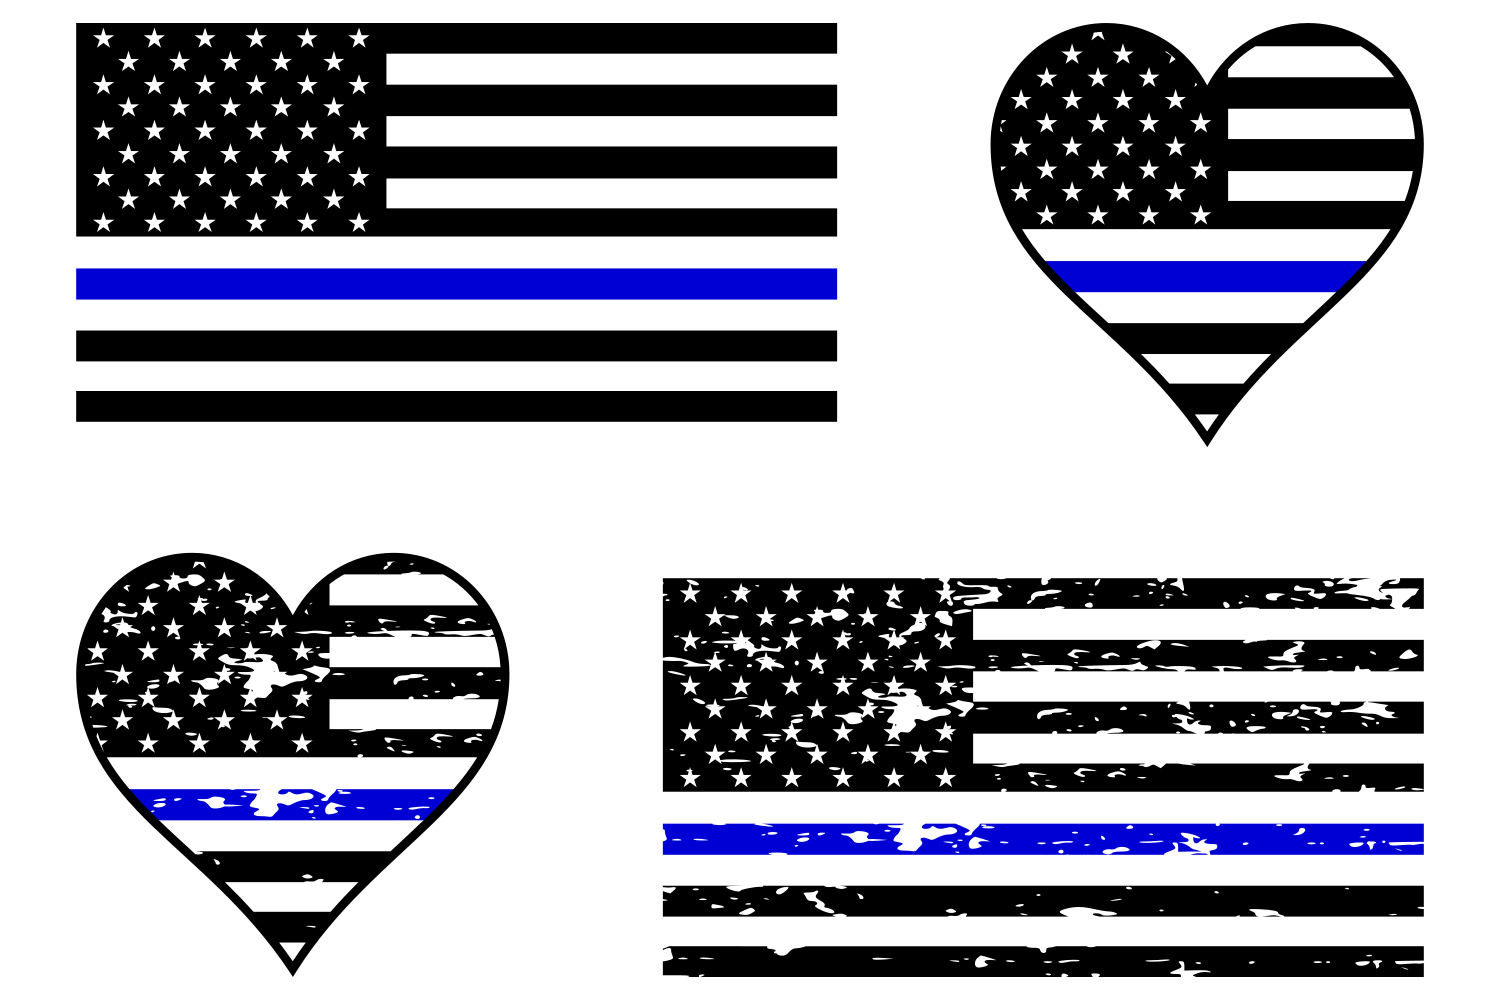 thin blue line flag svg #86, Download drawings